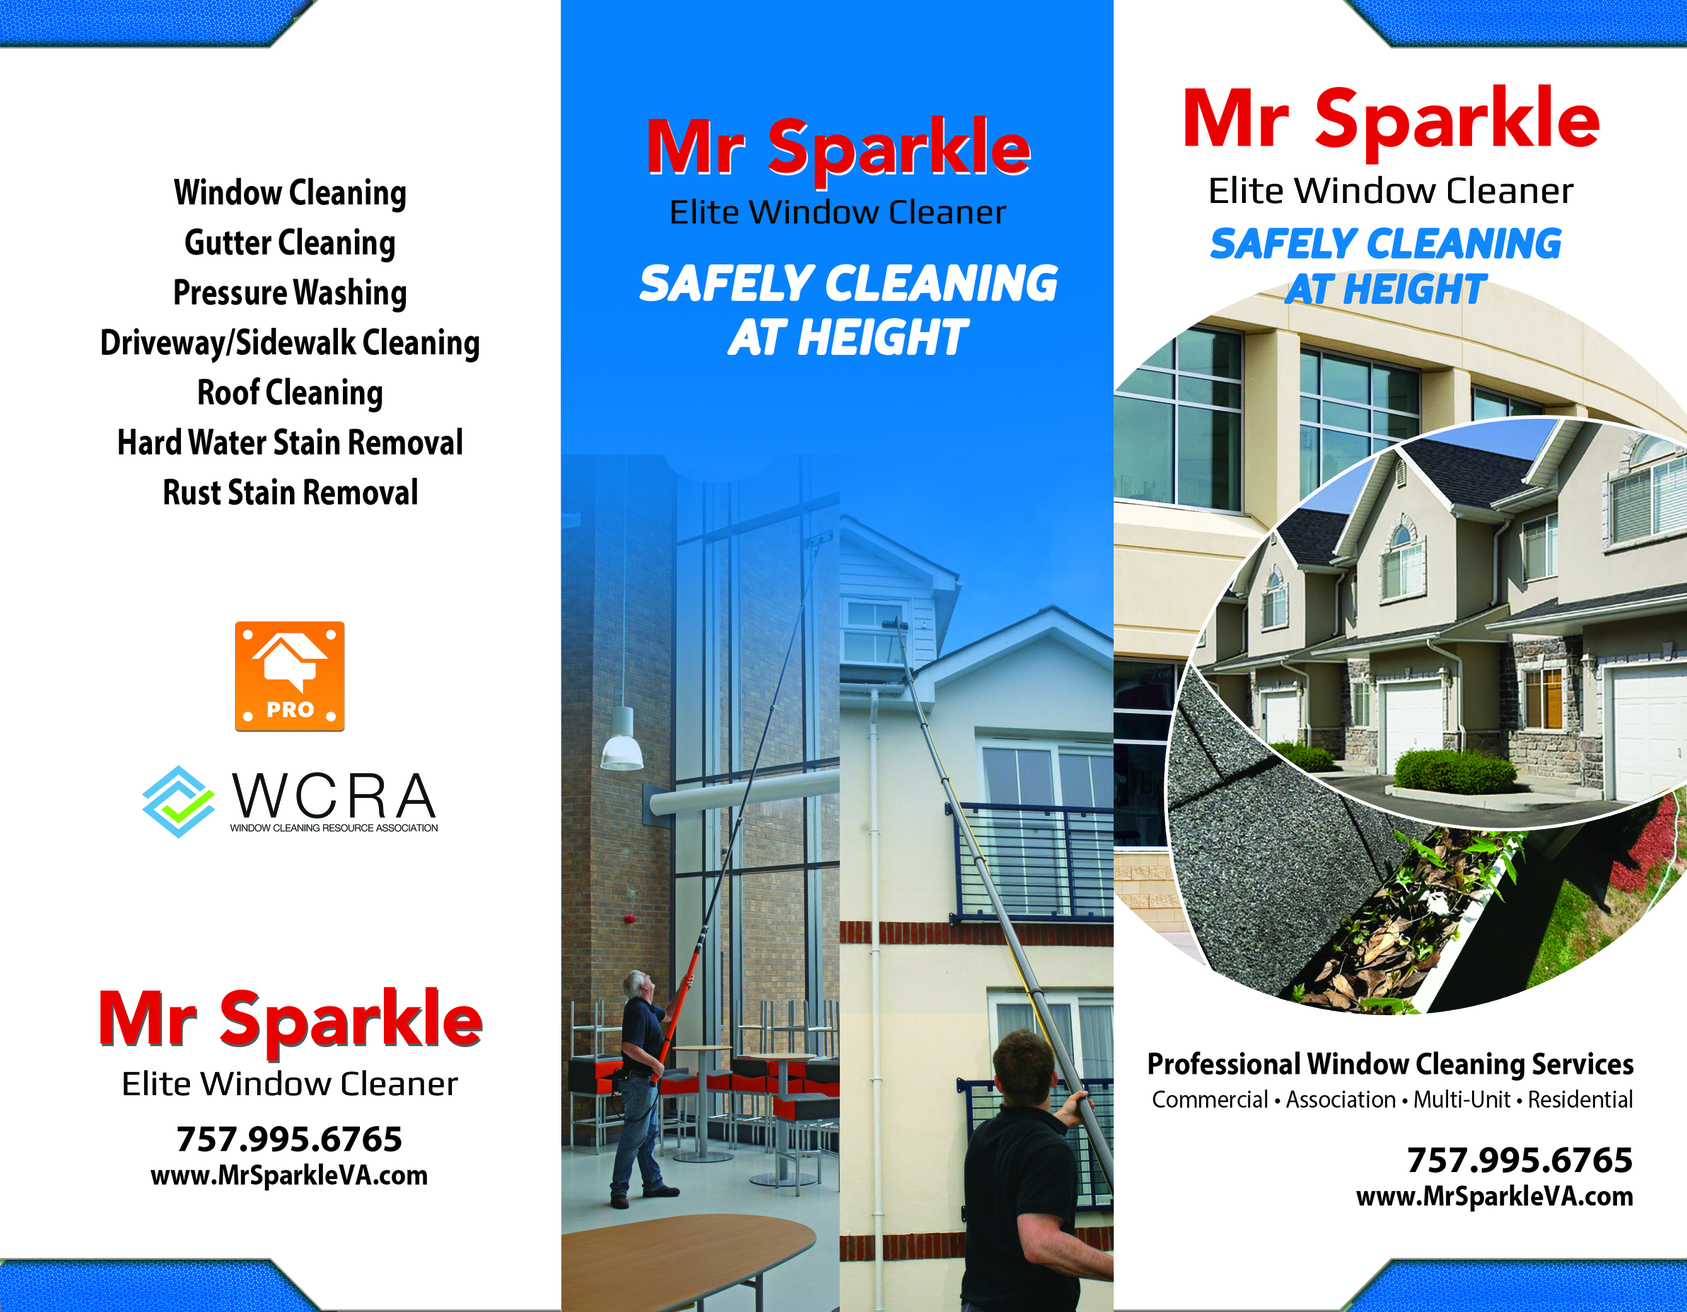 Mr Sparkle Brochure Trifold Pp Window Cleaning Outside Jpg1687x1312 1 88 Mb